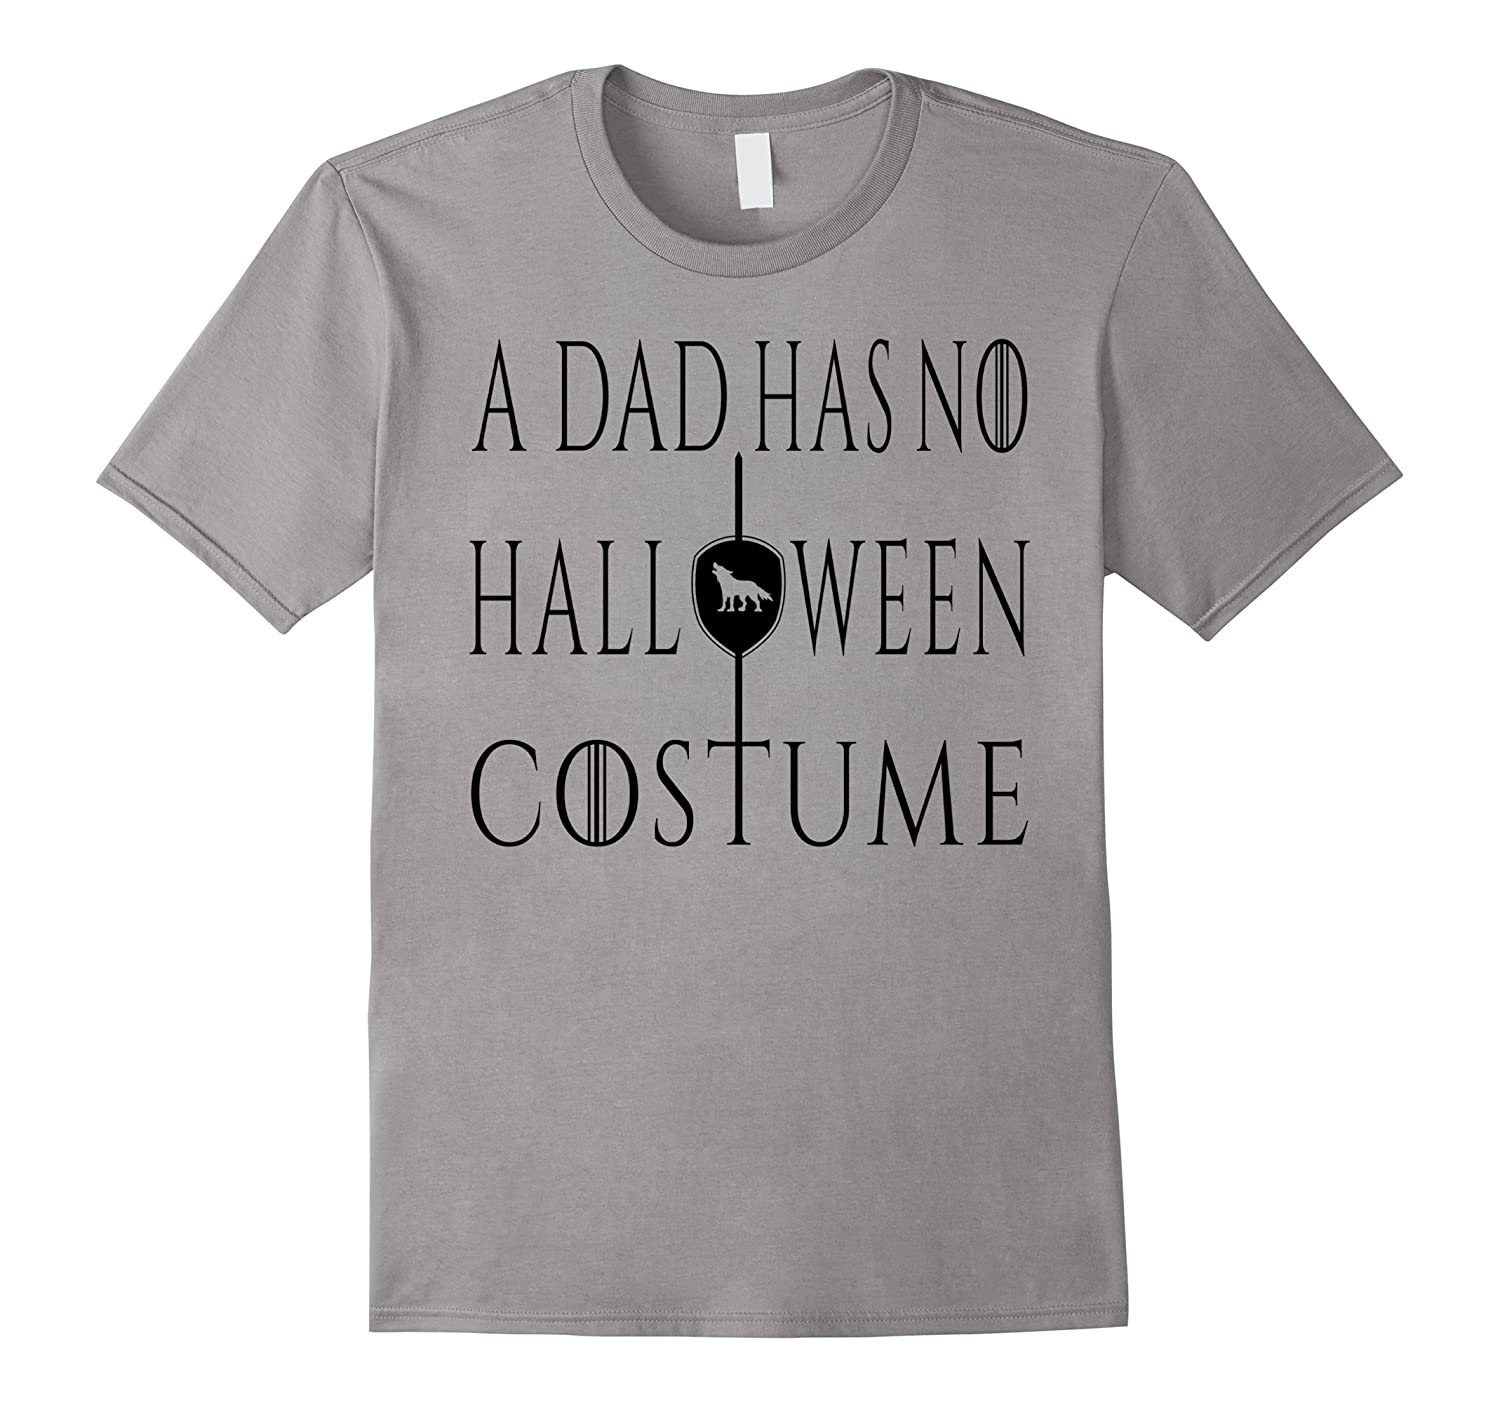 A Dad Has No Halloween Costume T-Shirt Funny Party Joke-T-Shirt